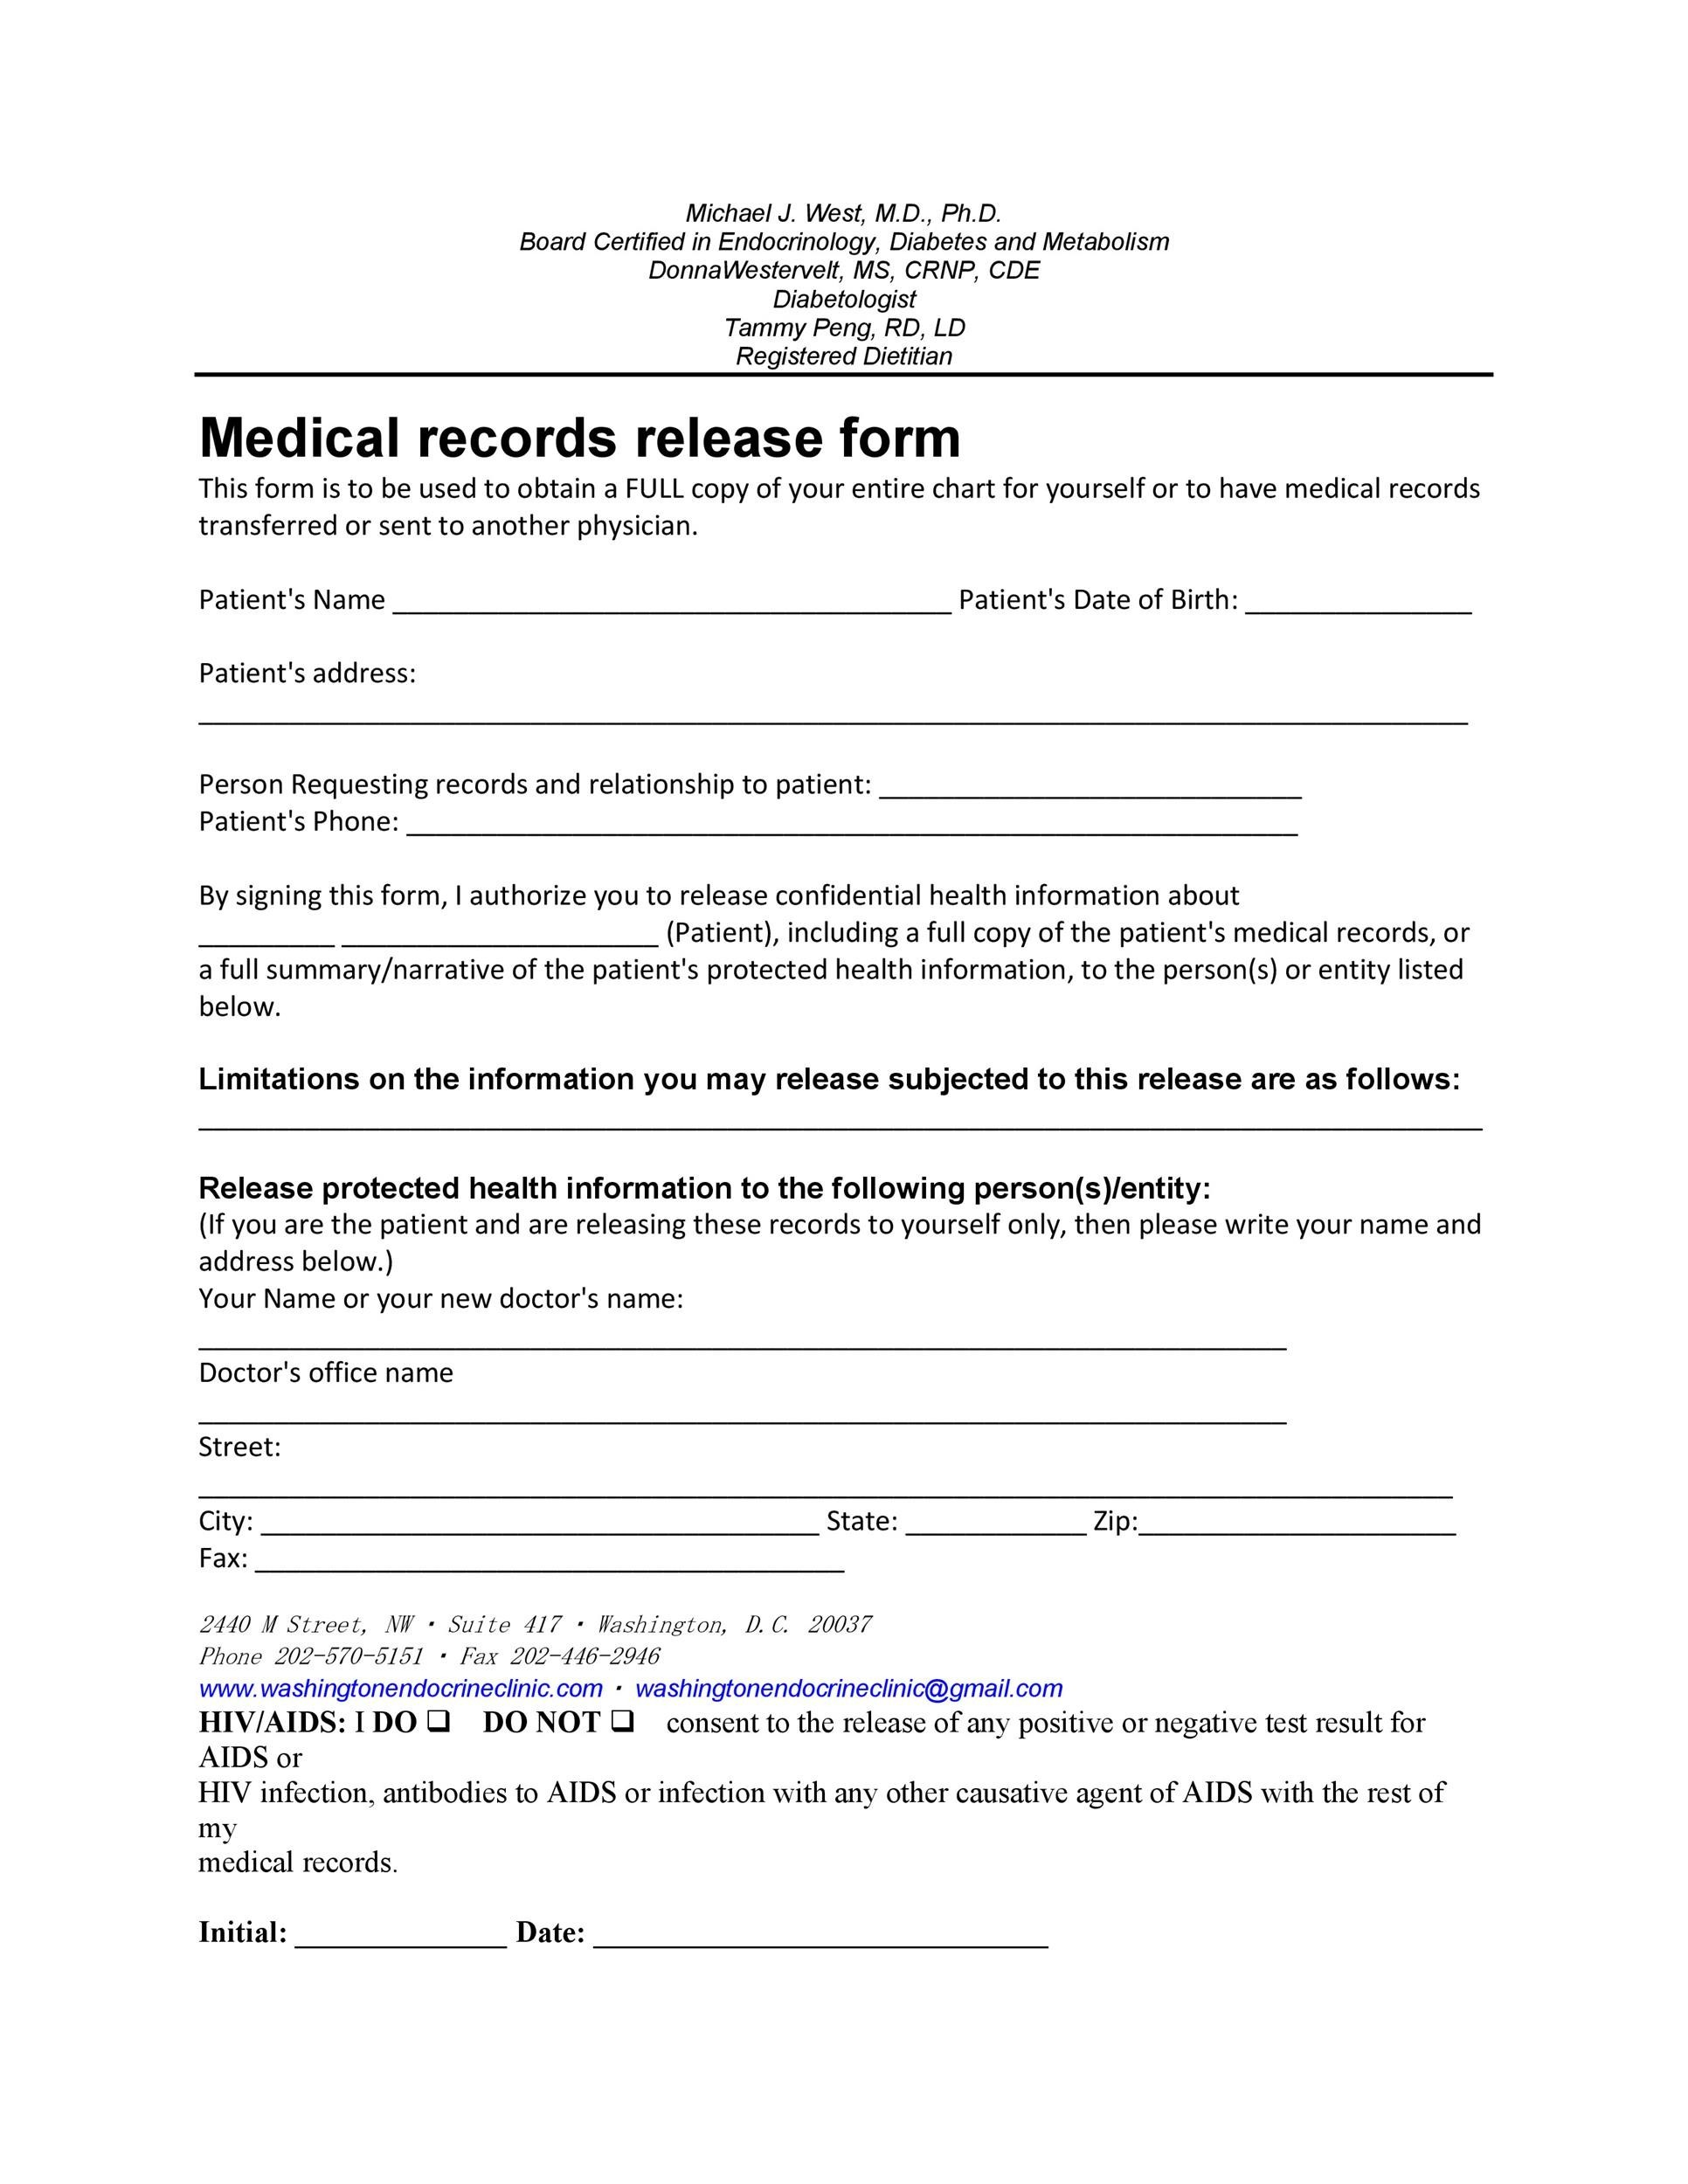 printable medical release form 05 - Medical Records Release Form